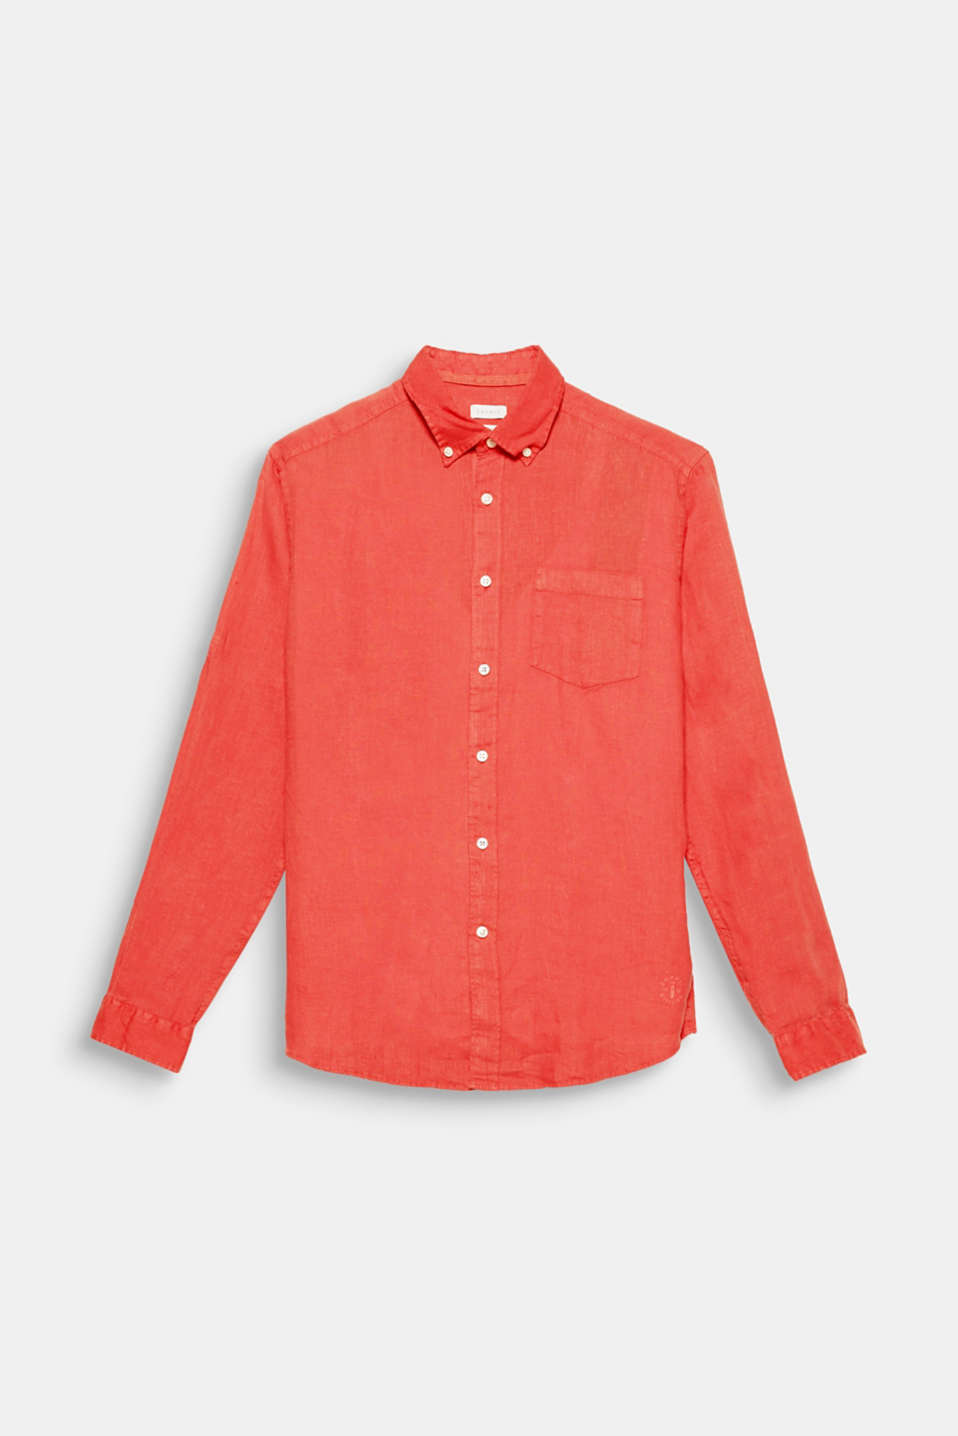 The high-quality, airy and lightweight denim fabric ensures this shirt is super comfortable to wear.